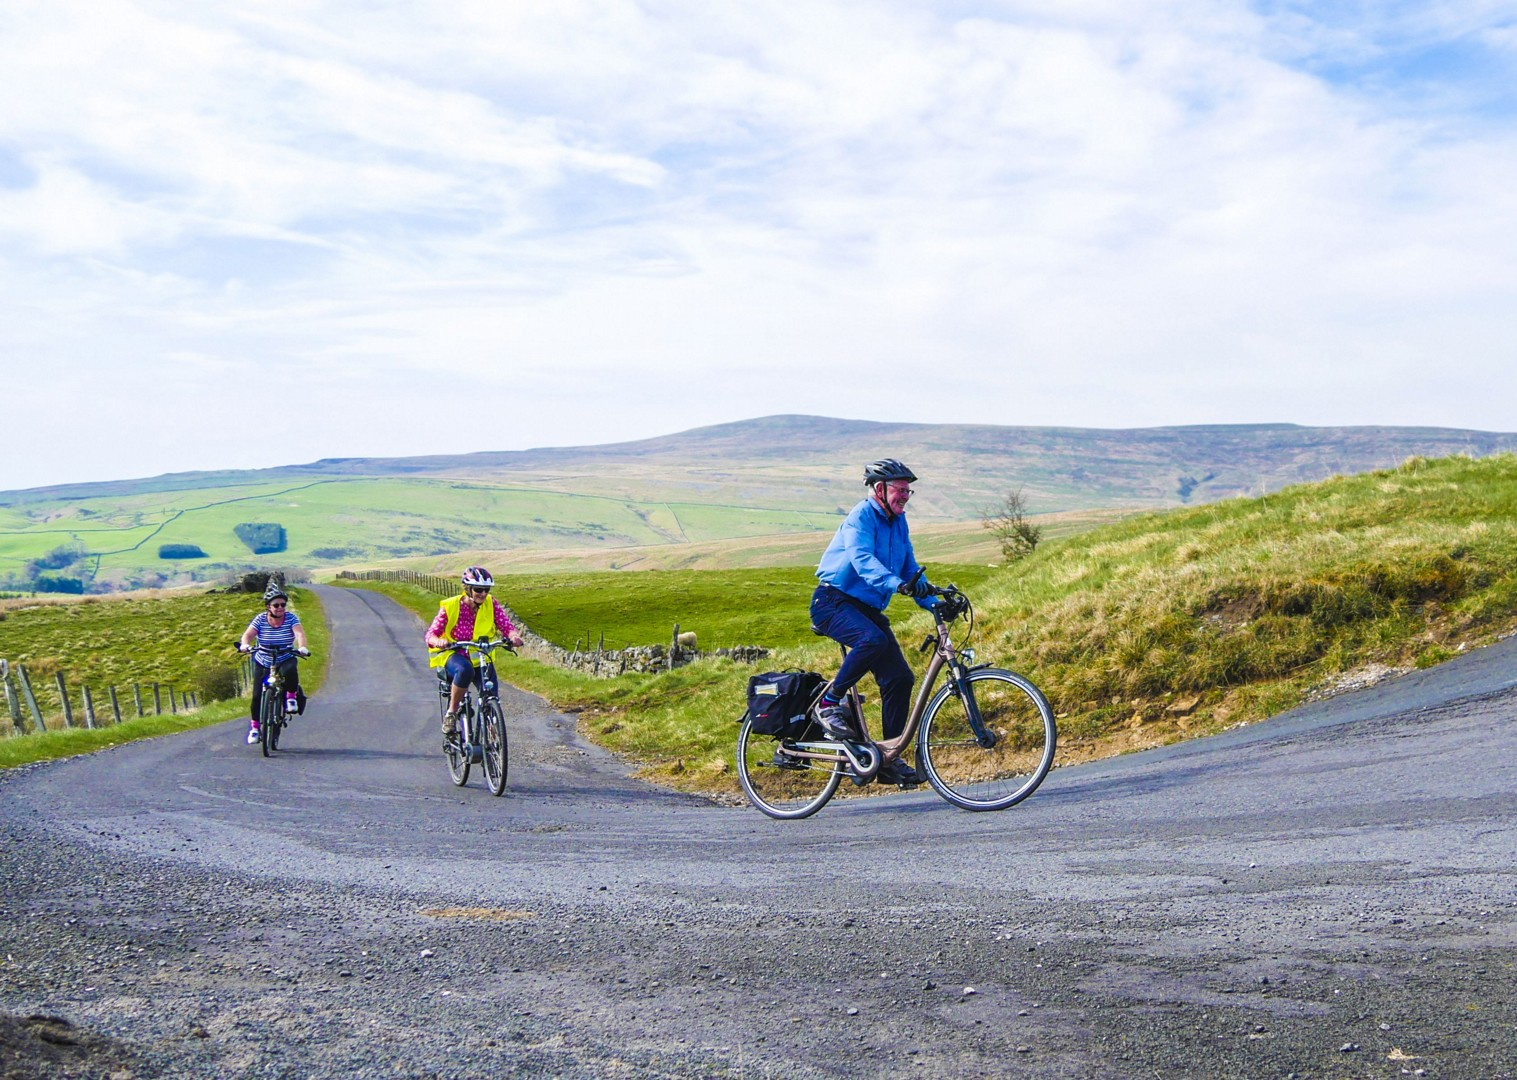 tour-for-all-ages-skedaddle-england-bike-holiday-amazing-experiences.jpg - UK - C2C - Coast to Coast - Supported Leisure Cycling Holiday - Leisure Cycling